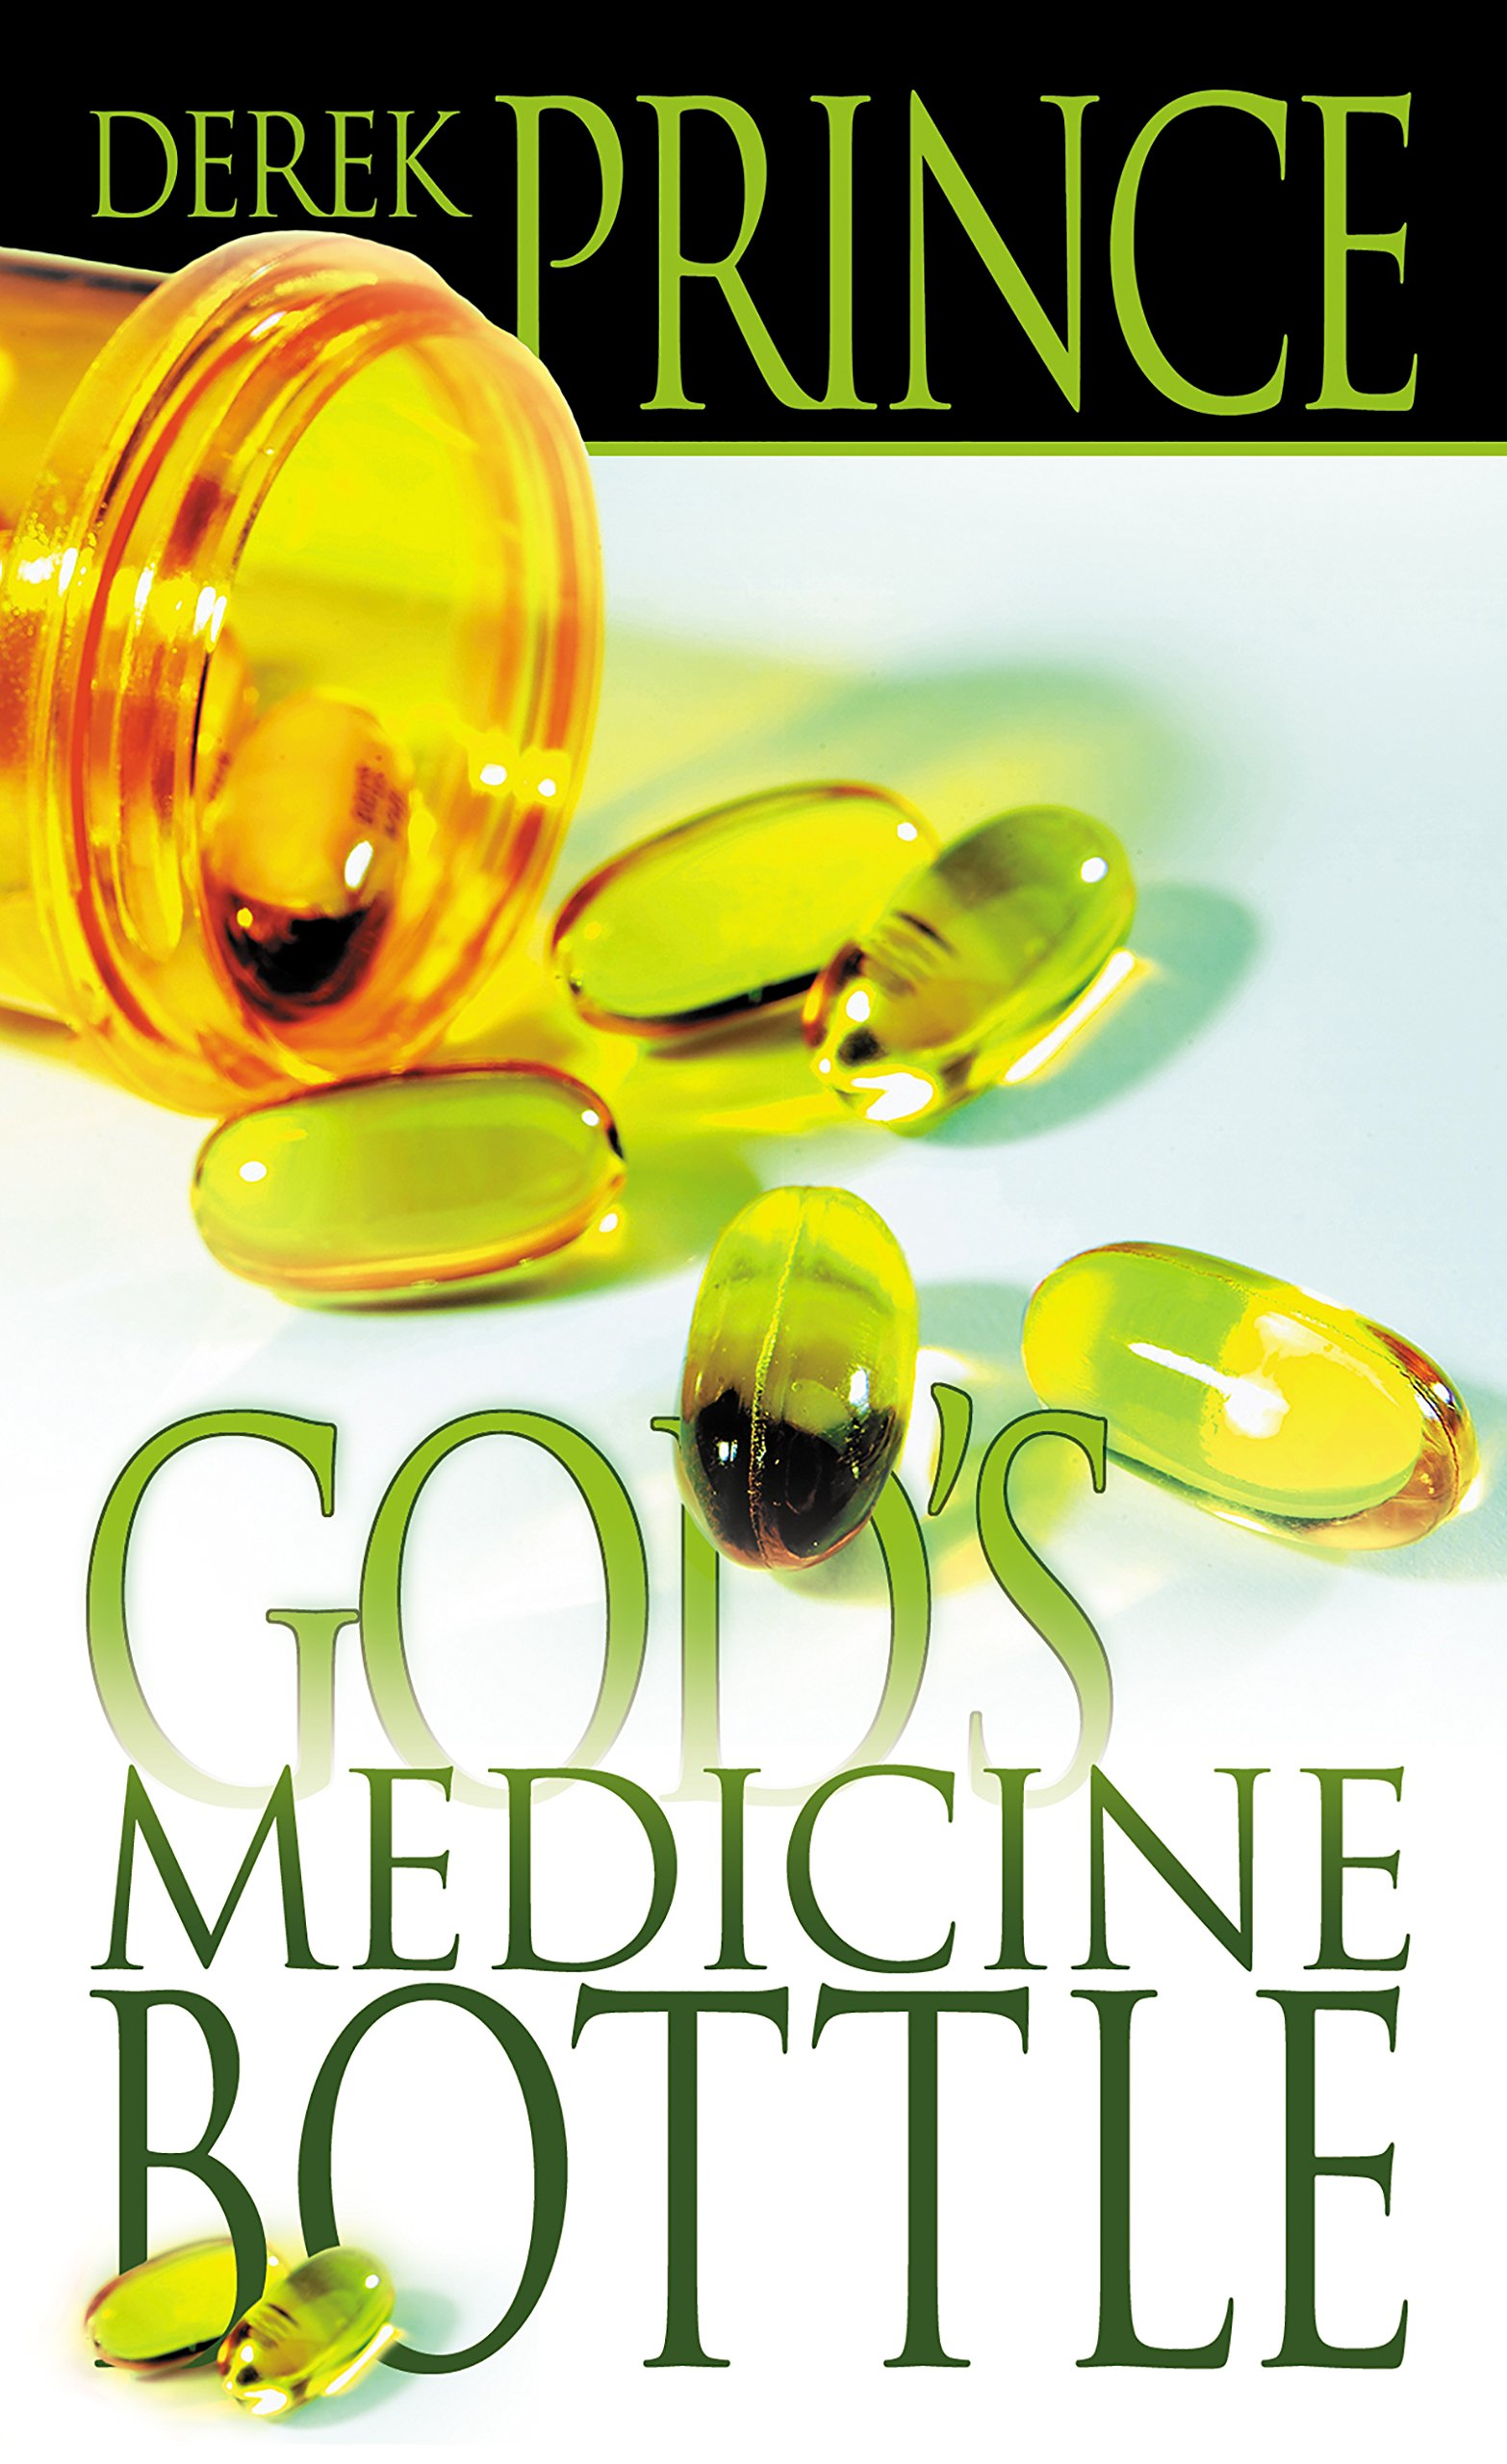 God's Medicine Bottle: Derek Prince: 9780883683323: Amazon com: Books